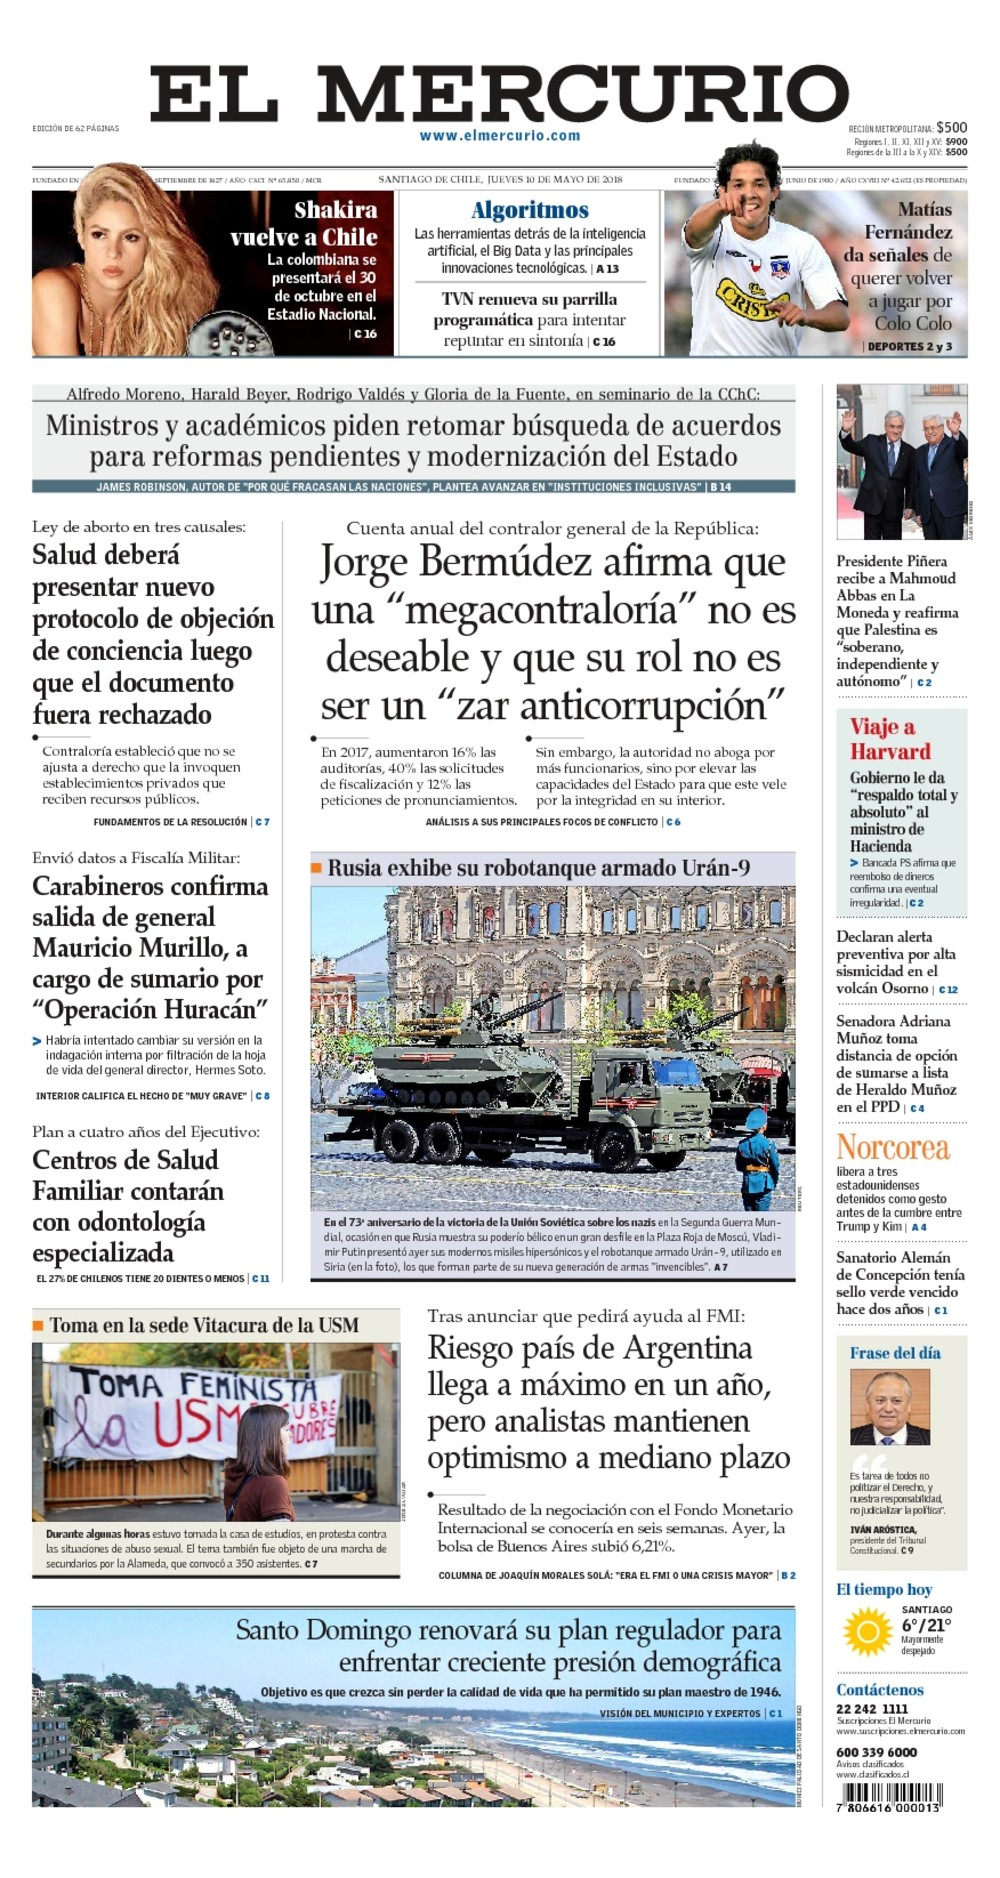 El Mercurio Mobile